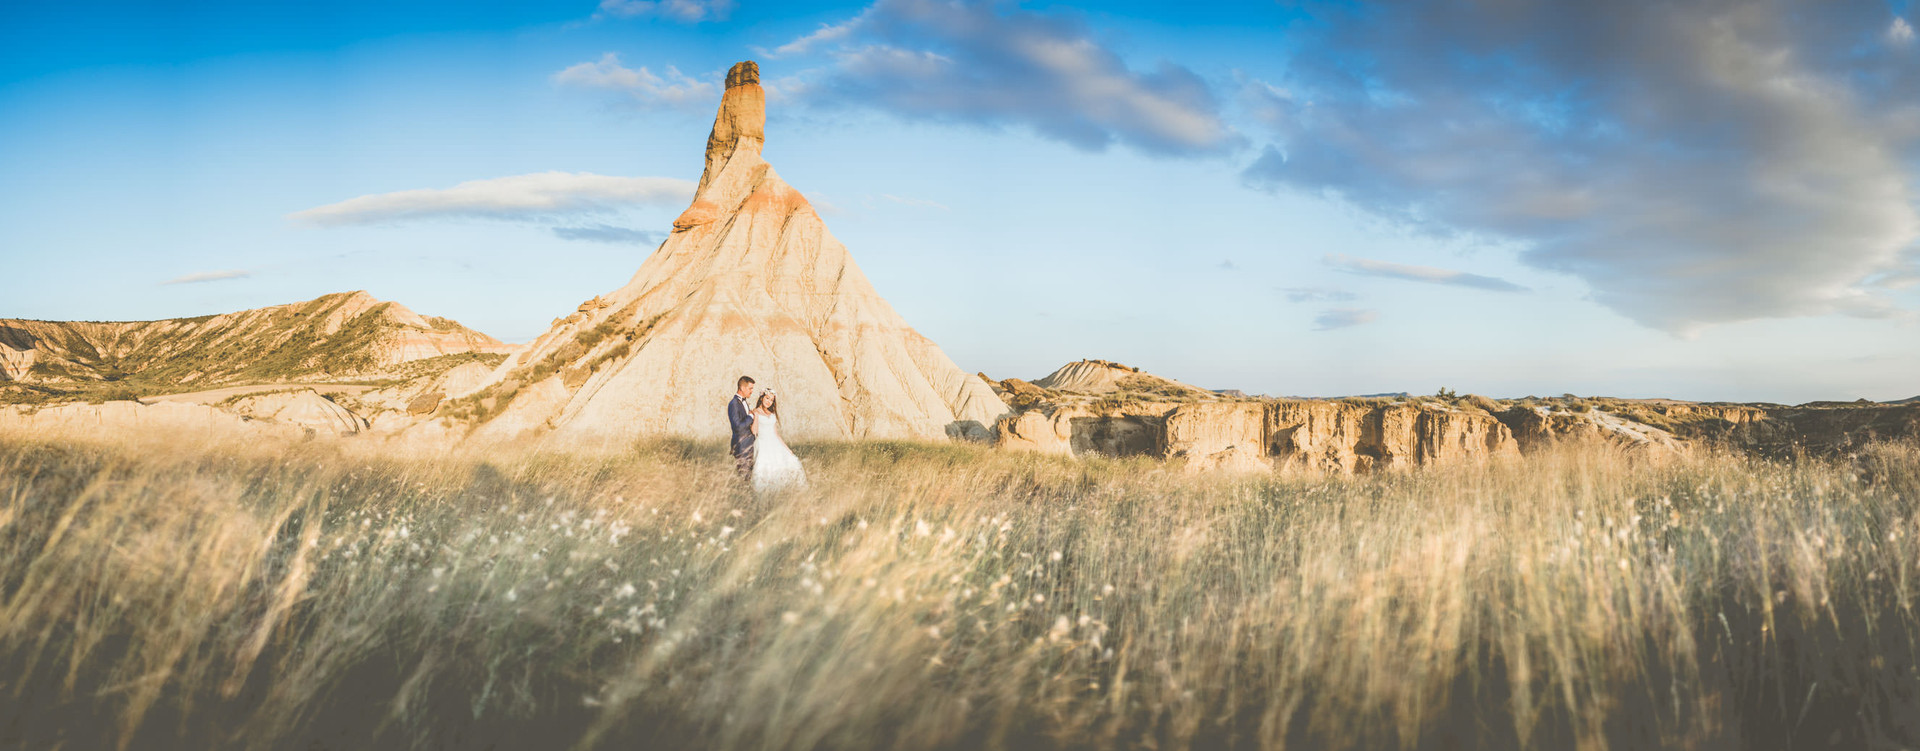 bardenas-reales-wedding-photographerbardenas-reales-wedding-photographer